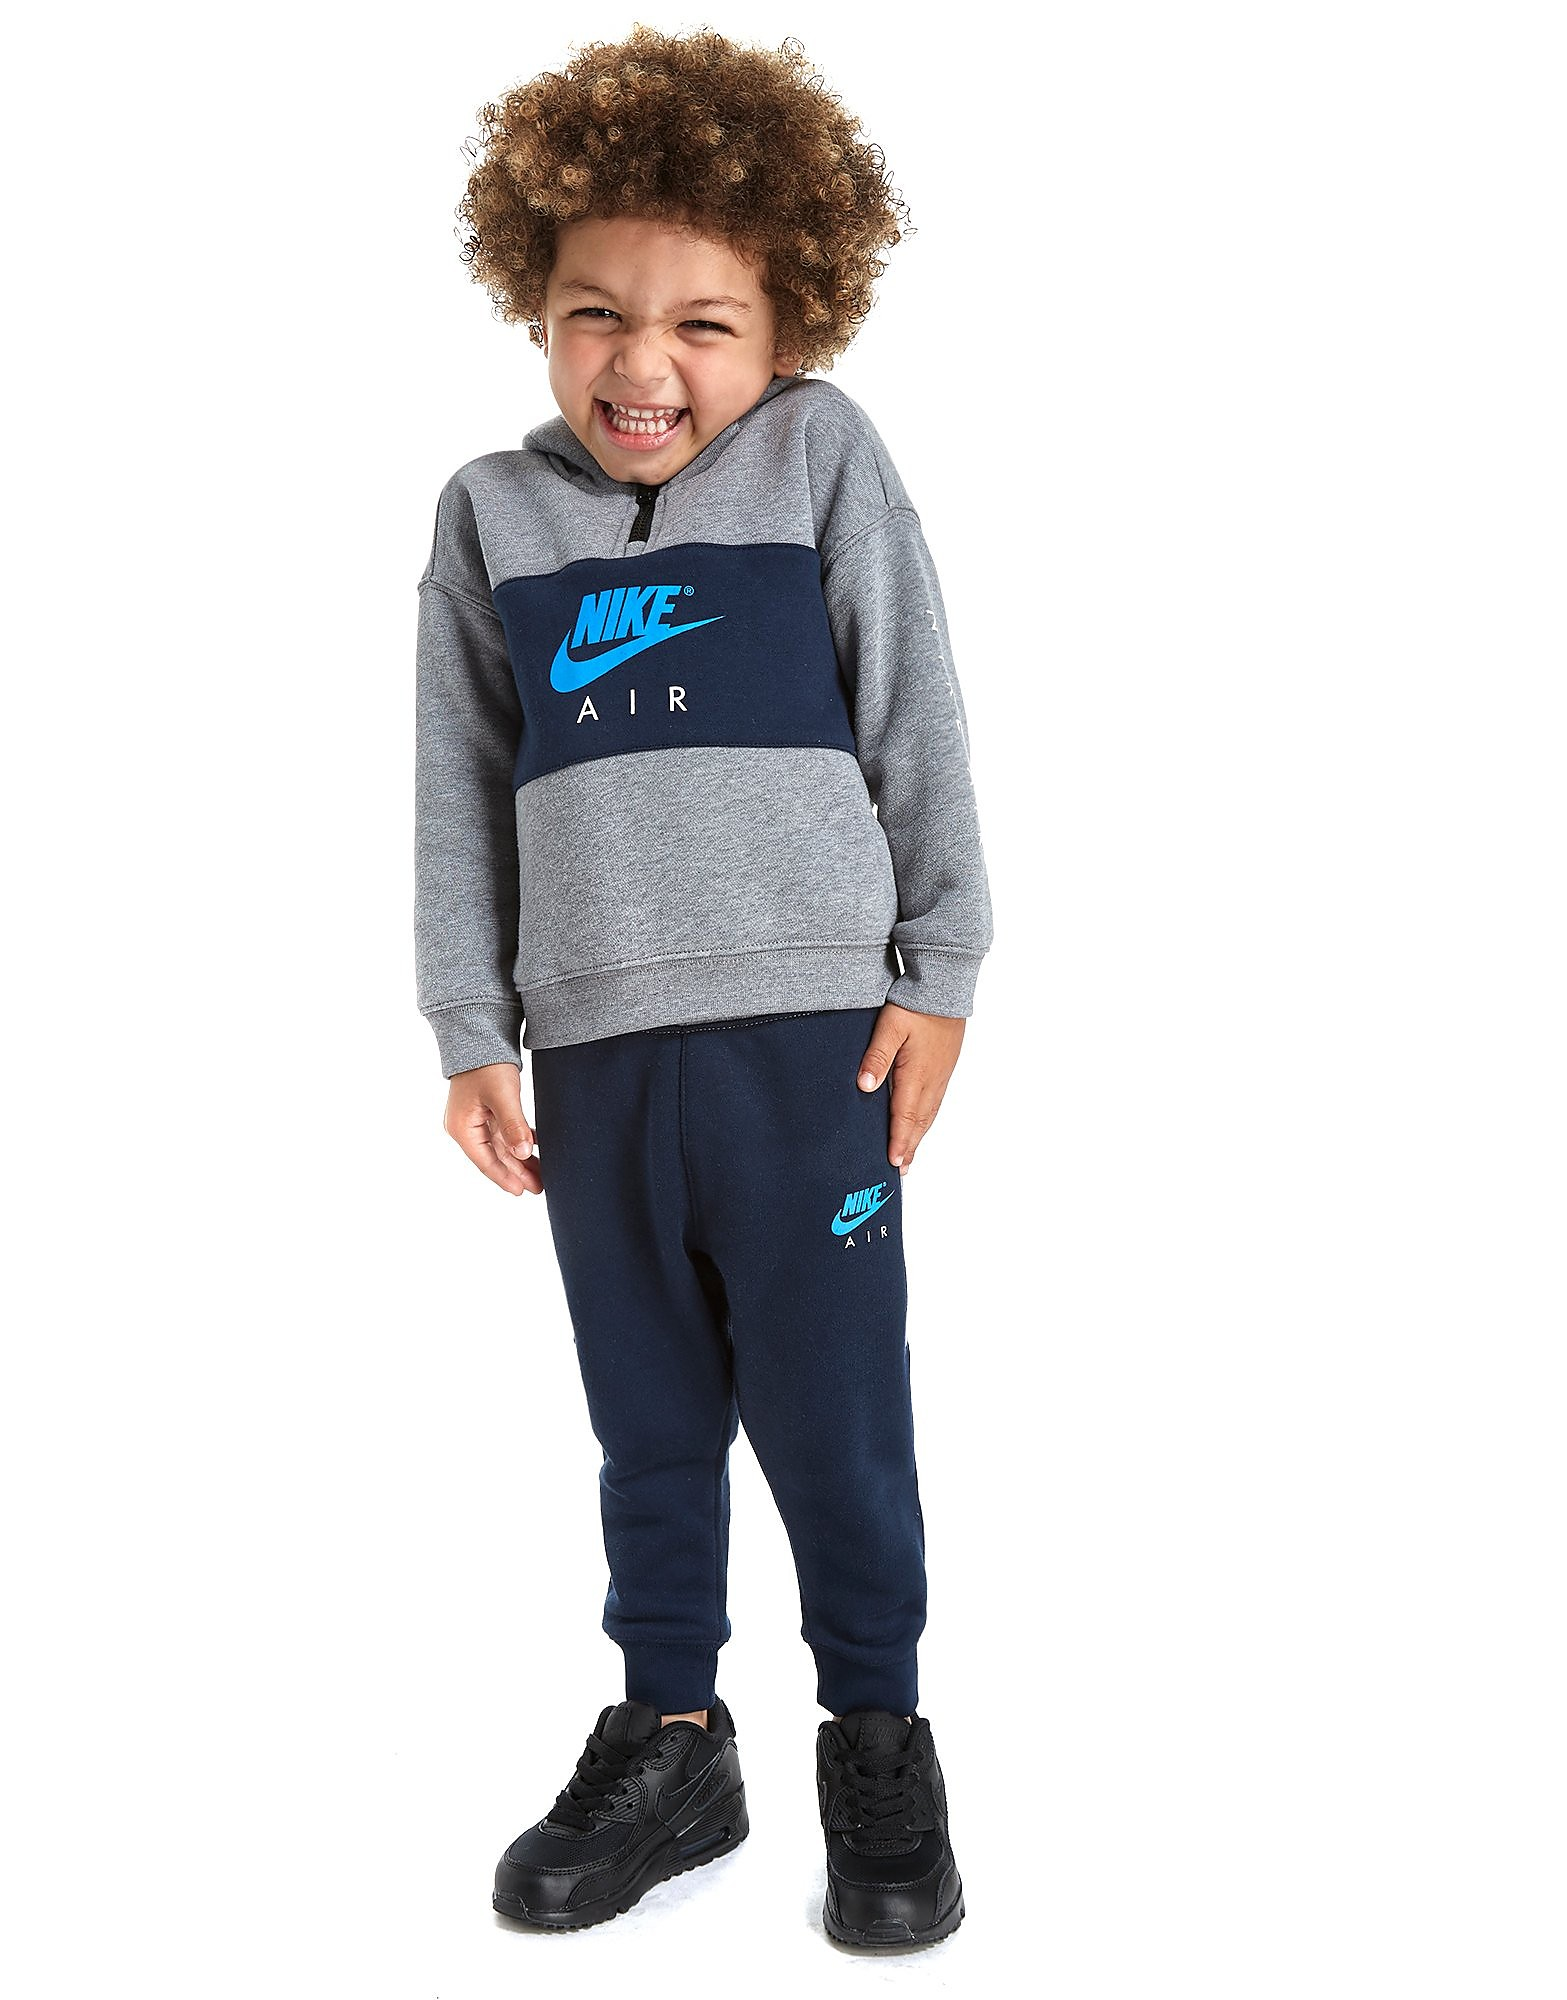 Nike Air 1/4 Zip Tracksuit Infants'